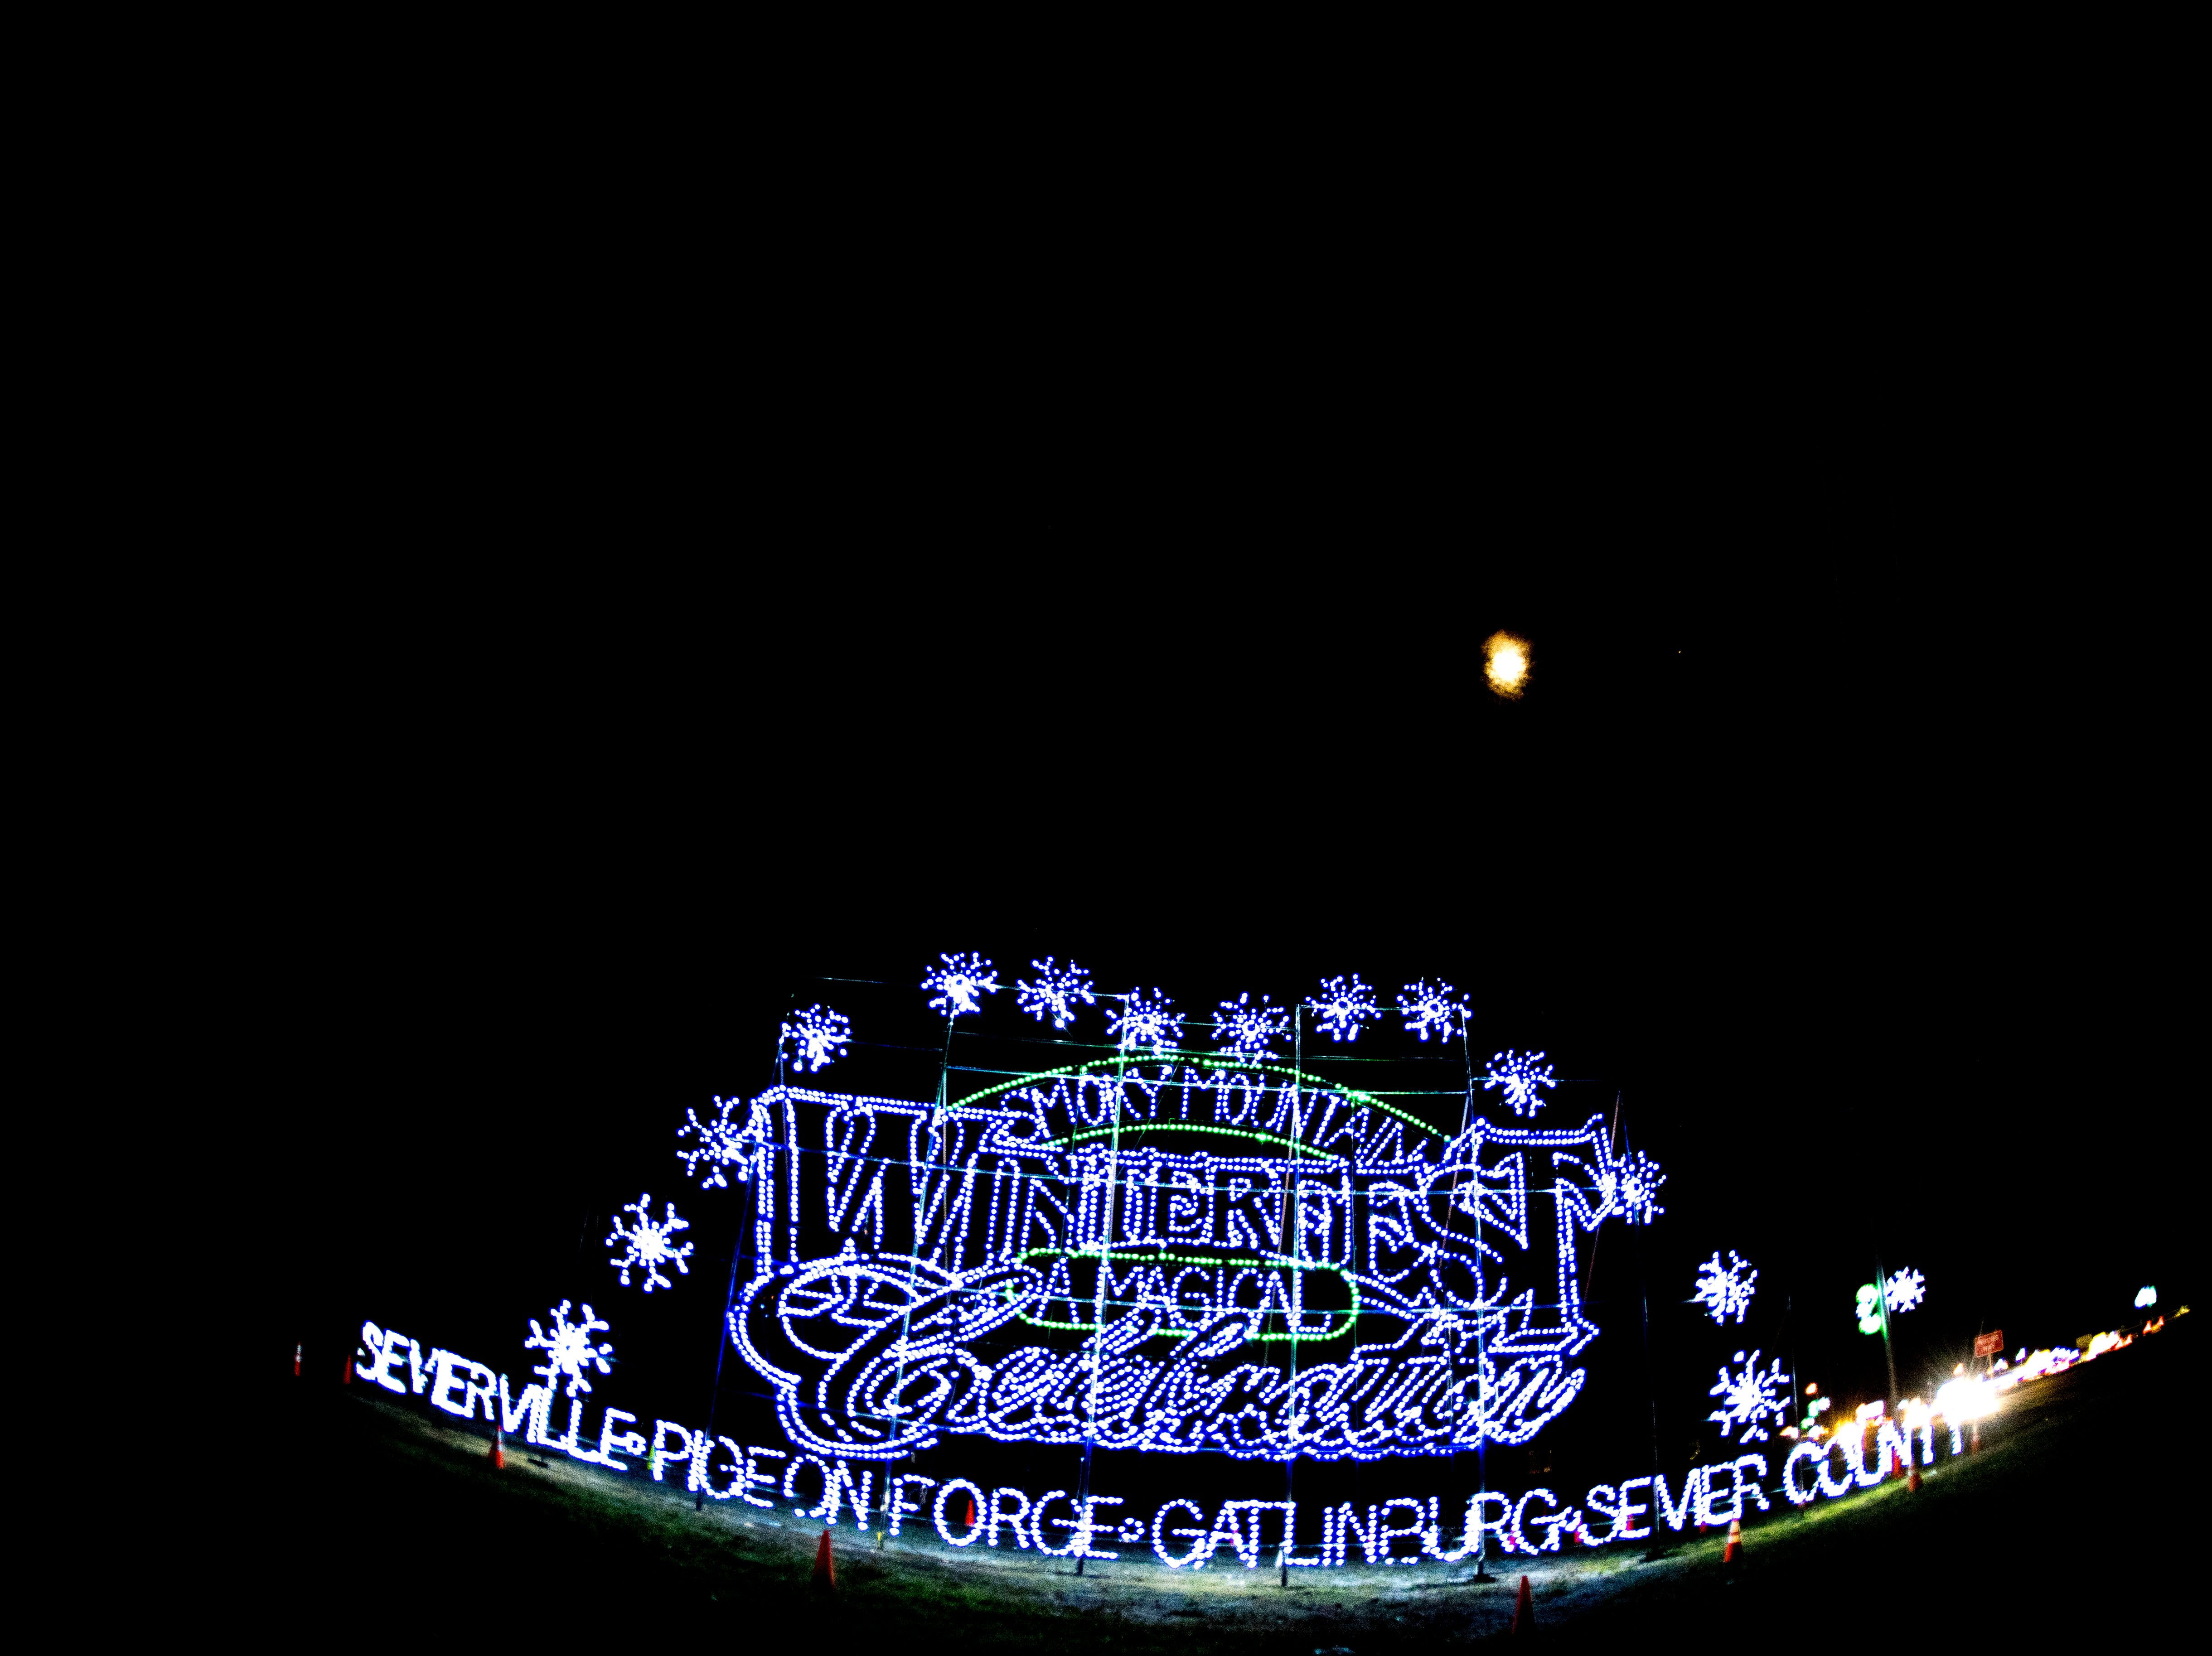 A Winterfest holiday lights sign welcomes visitors to Sevierville, Tennessee on Friday, November 16, 2018.